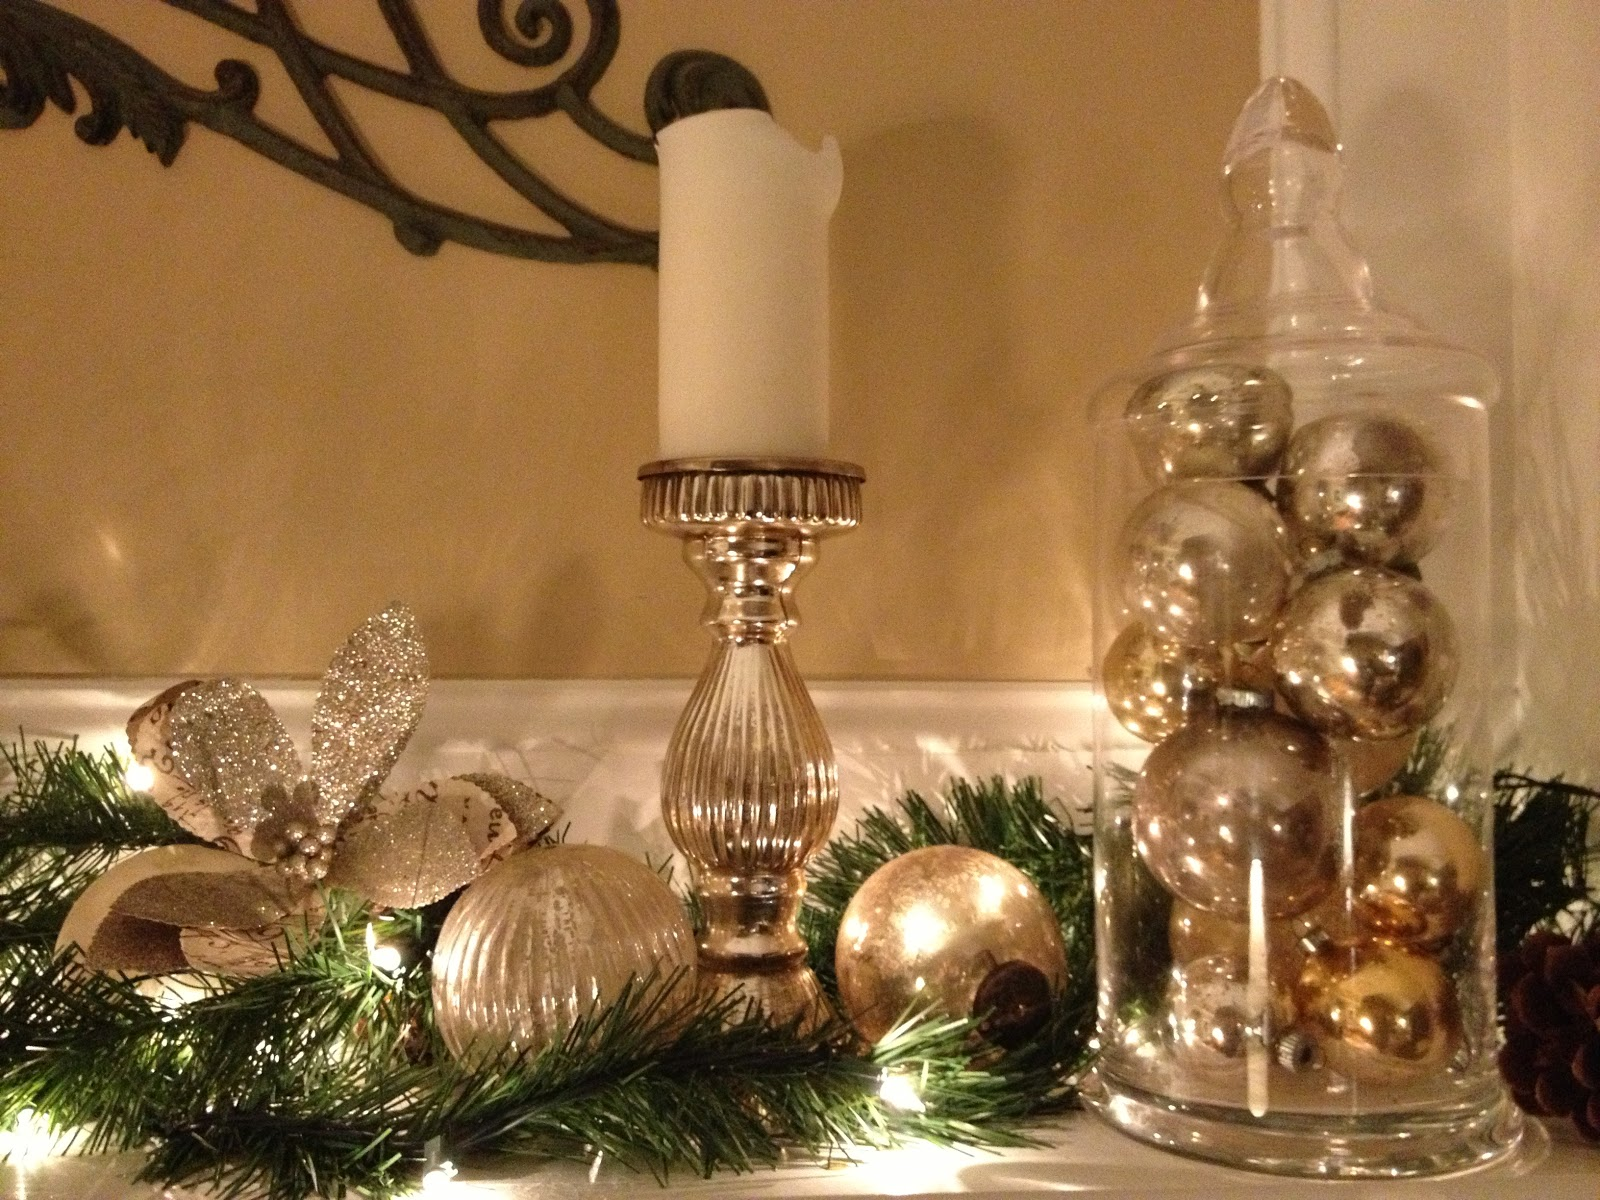 Decor Amore: Christmas Mantel Decorations